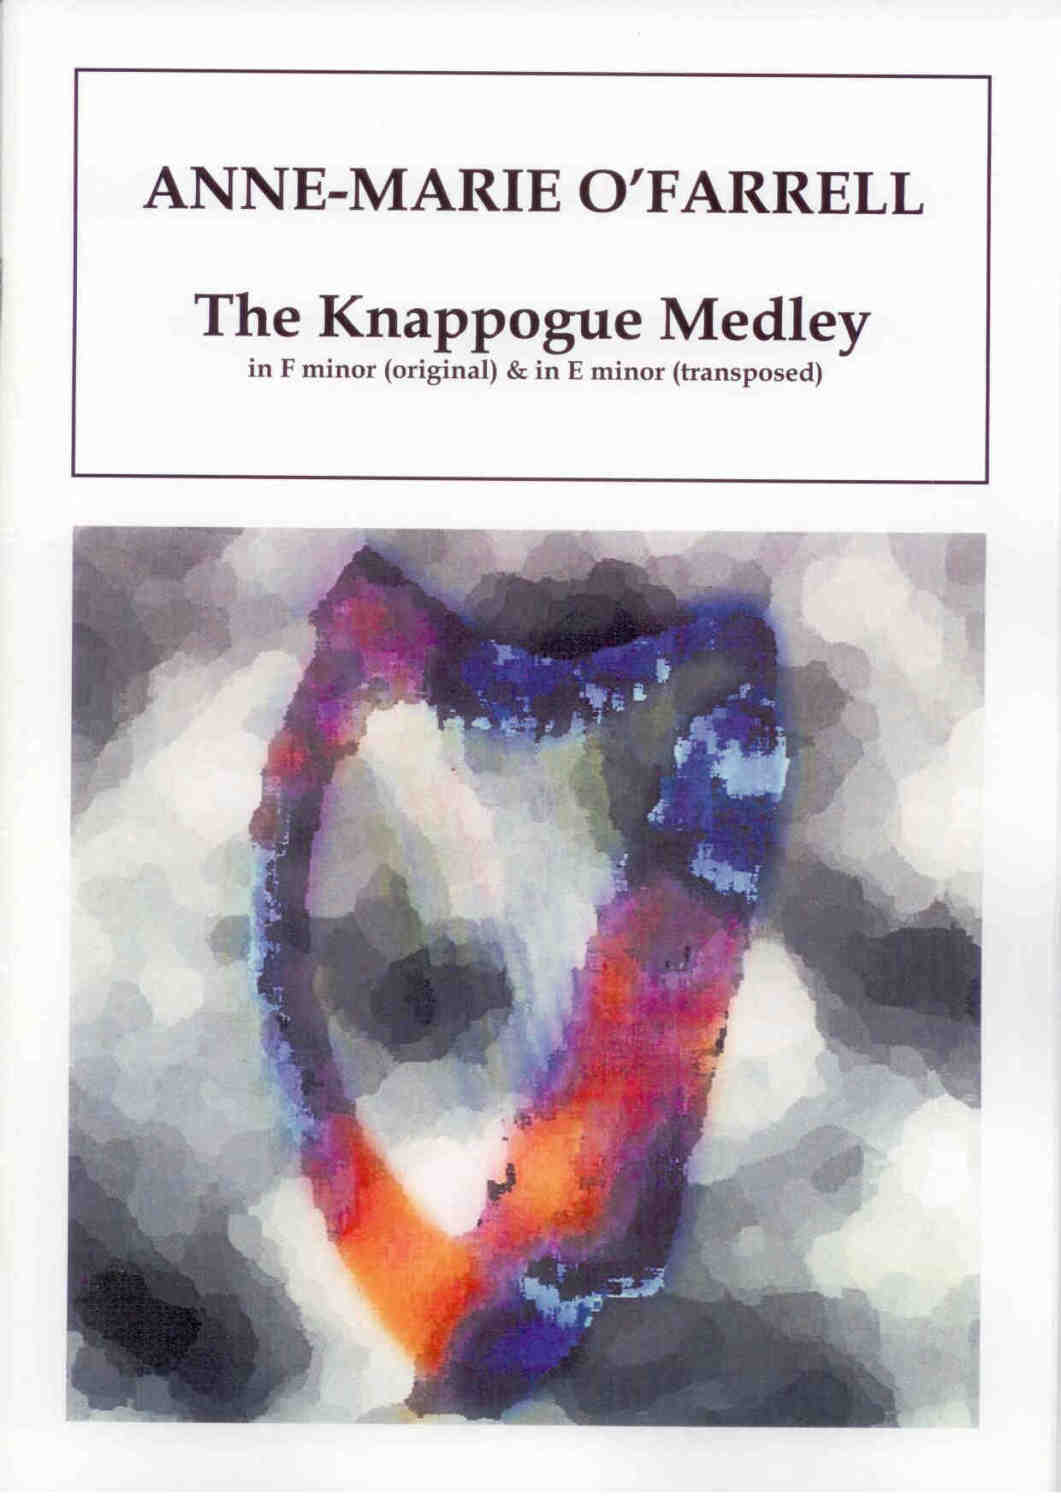 The Knappogue Medley - Anne-Marie O'Farrell